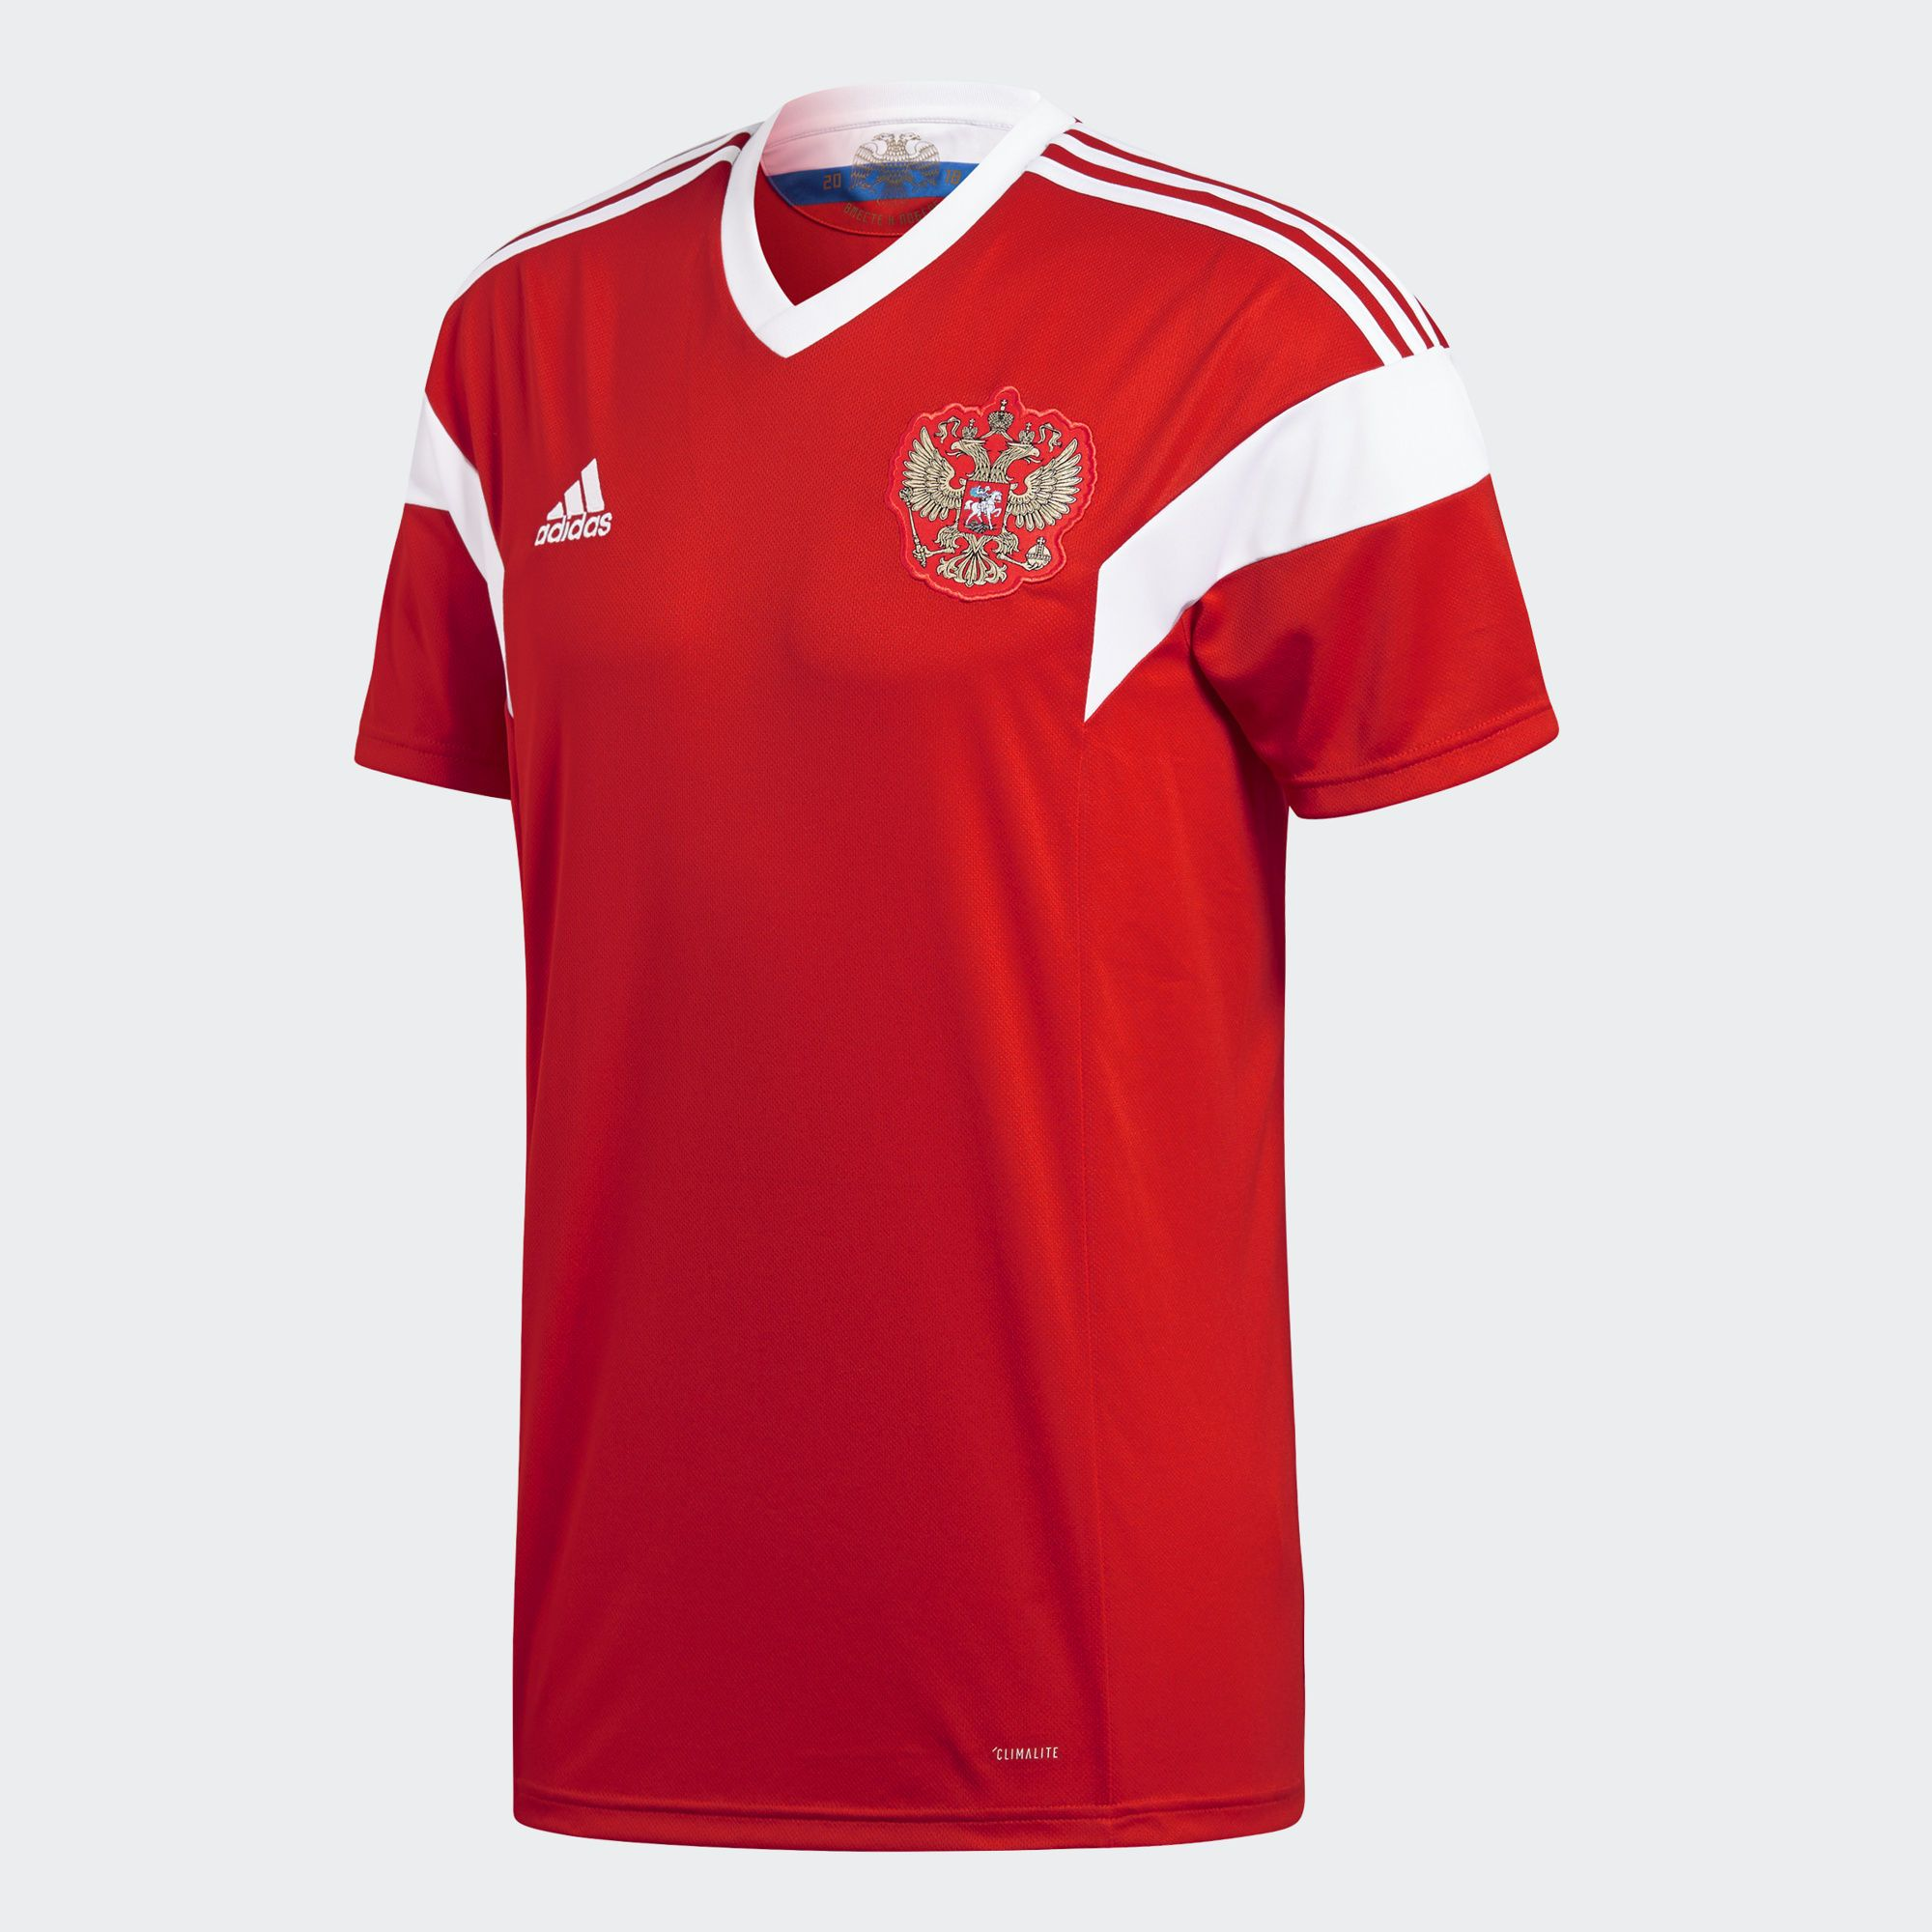 6d1652c0a22 Russia 2018 World Cup Adidas Home Kit | 17/18 Kits | Football shirt blog